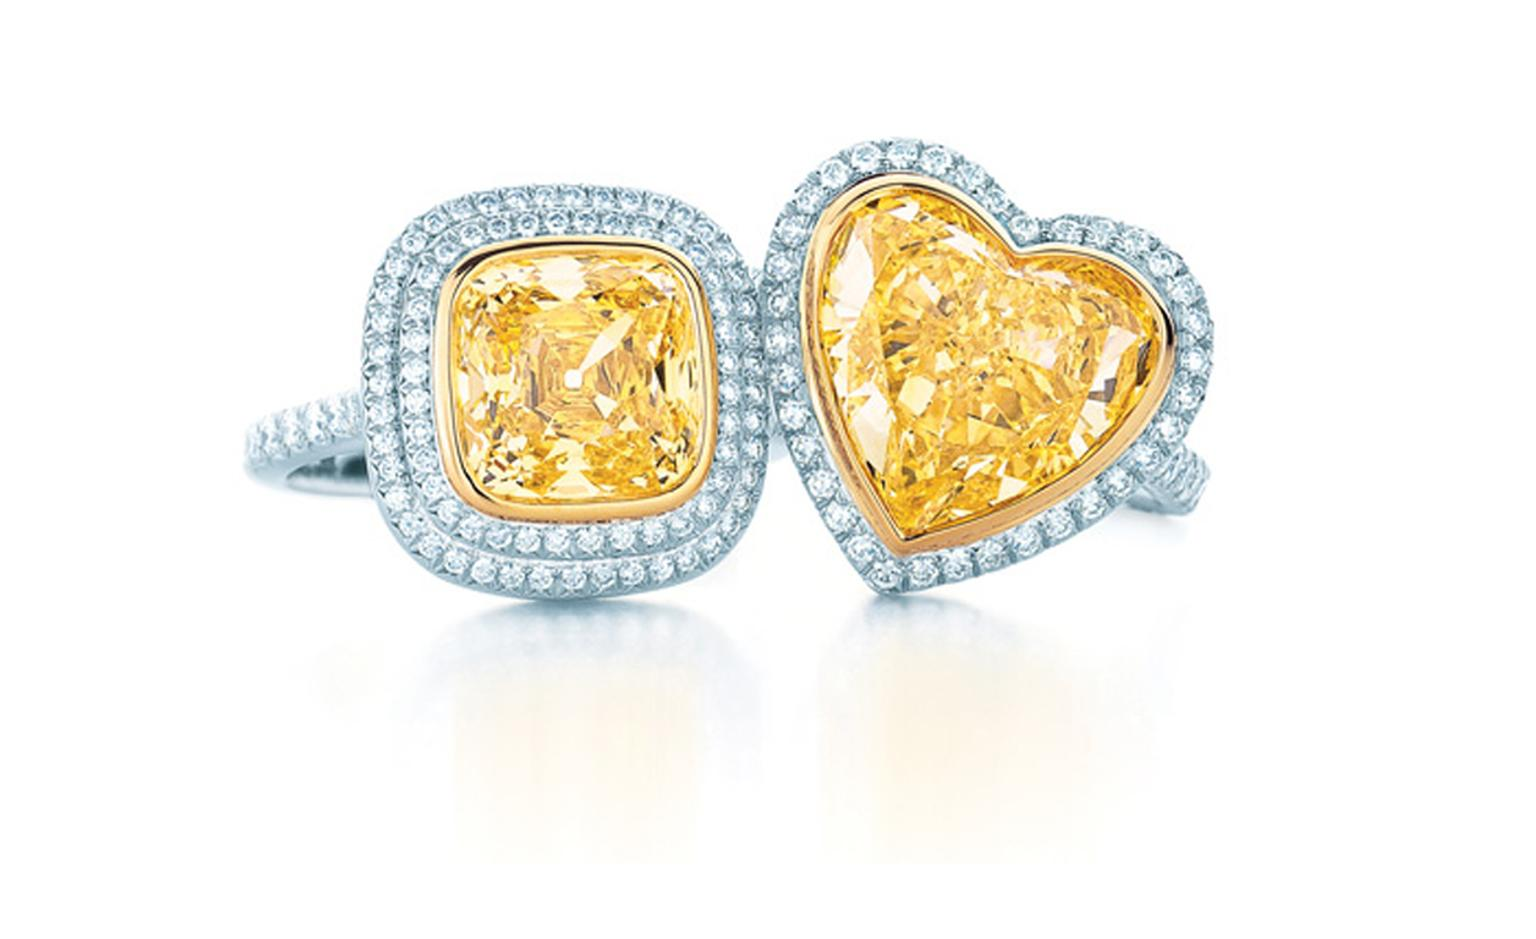 Tiffany & Co, yellow and white diamond rings. Square diamond £45,000 and heart shaped POA.